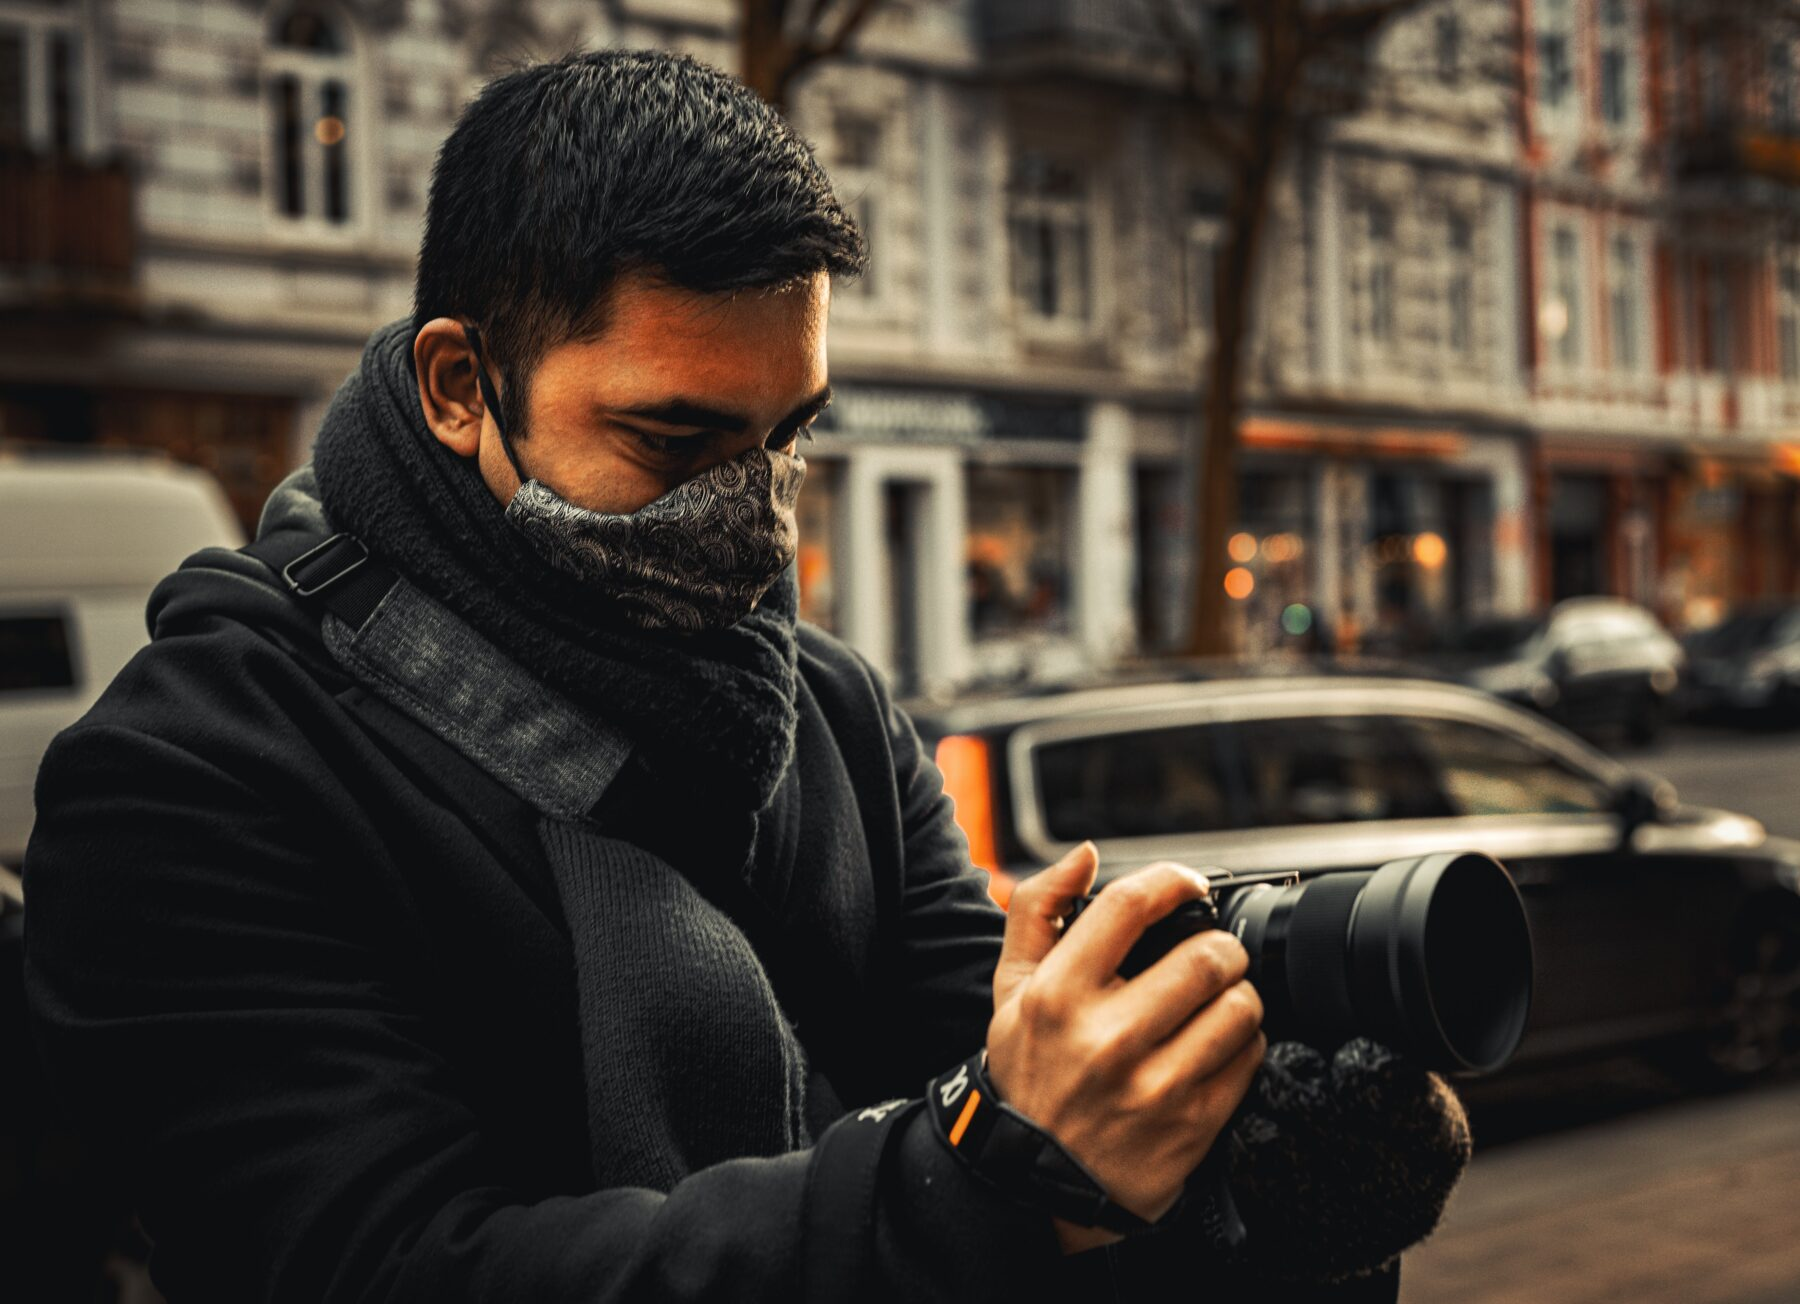 What makes you a photographer?